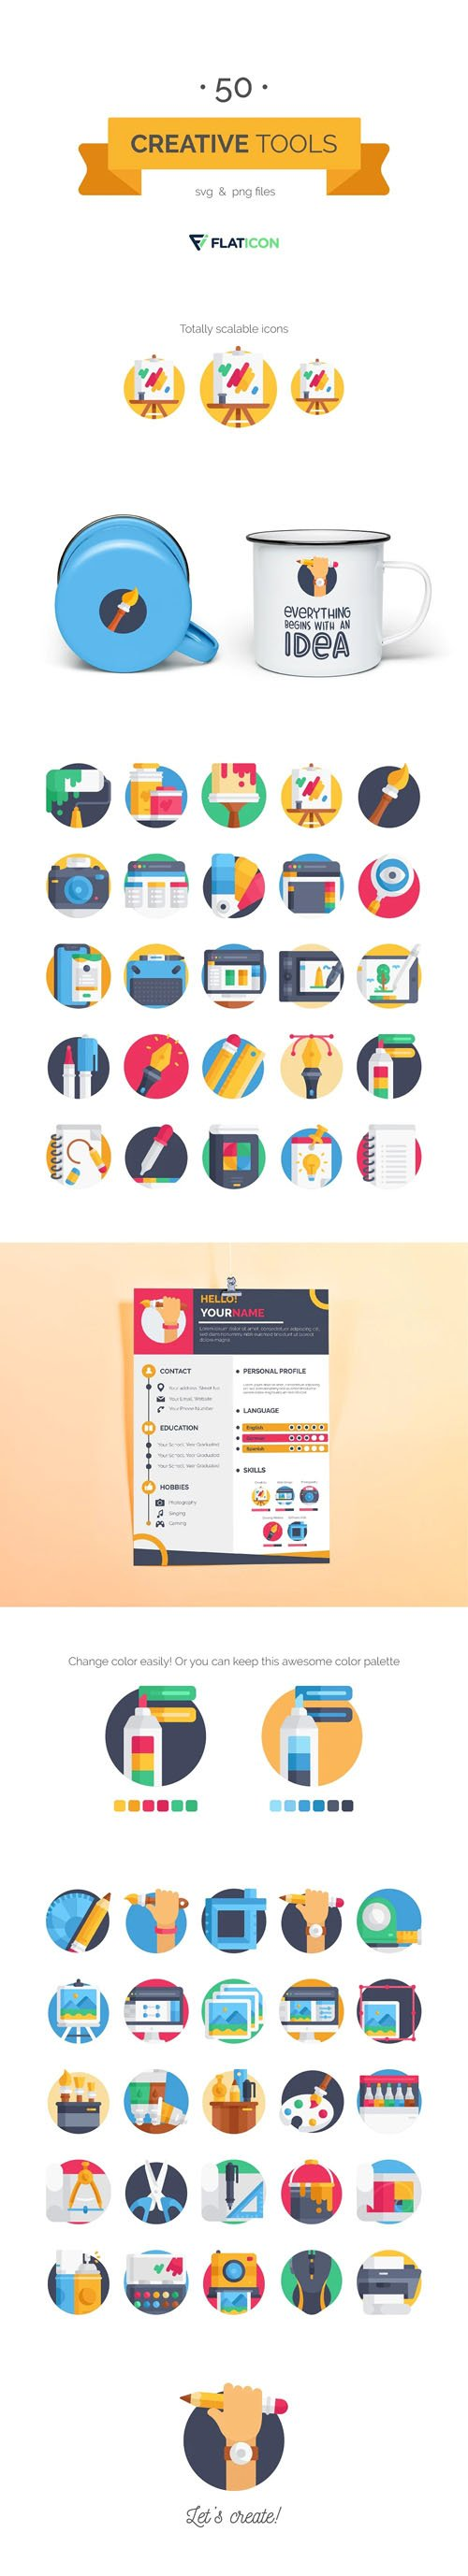 50 Creative Tools Icon Pack [PNG/SVG]